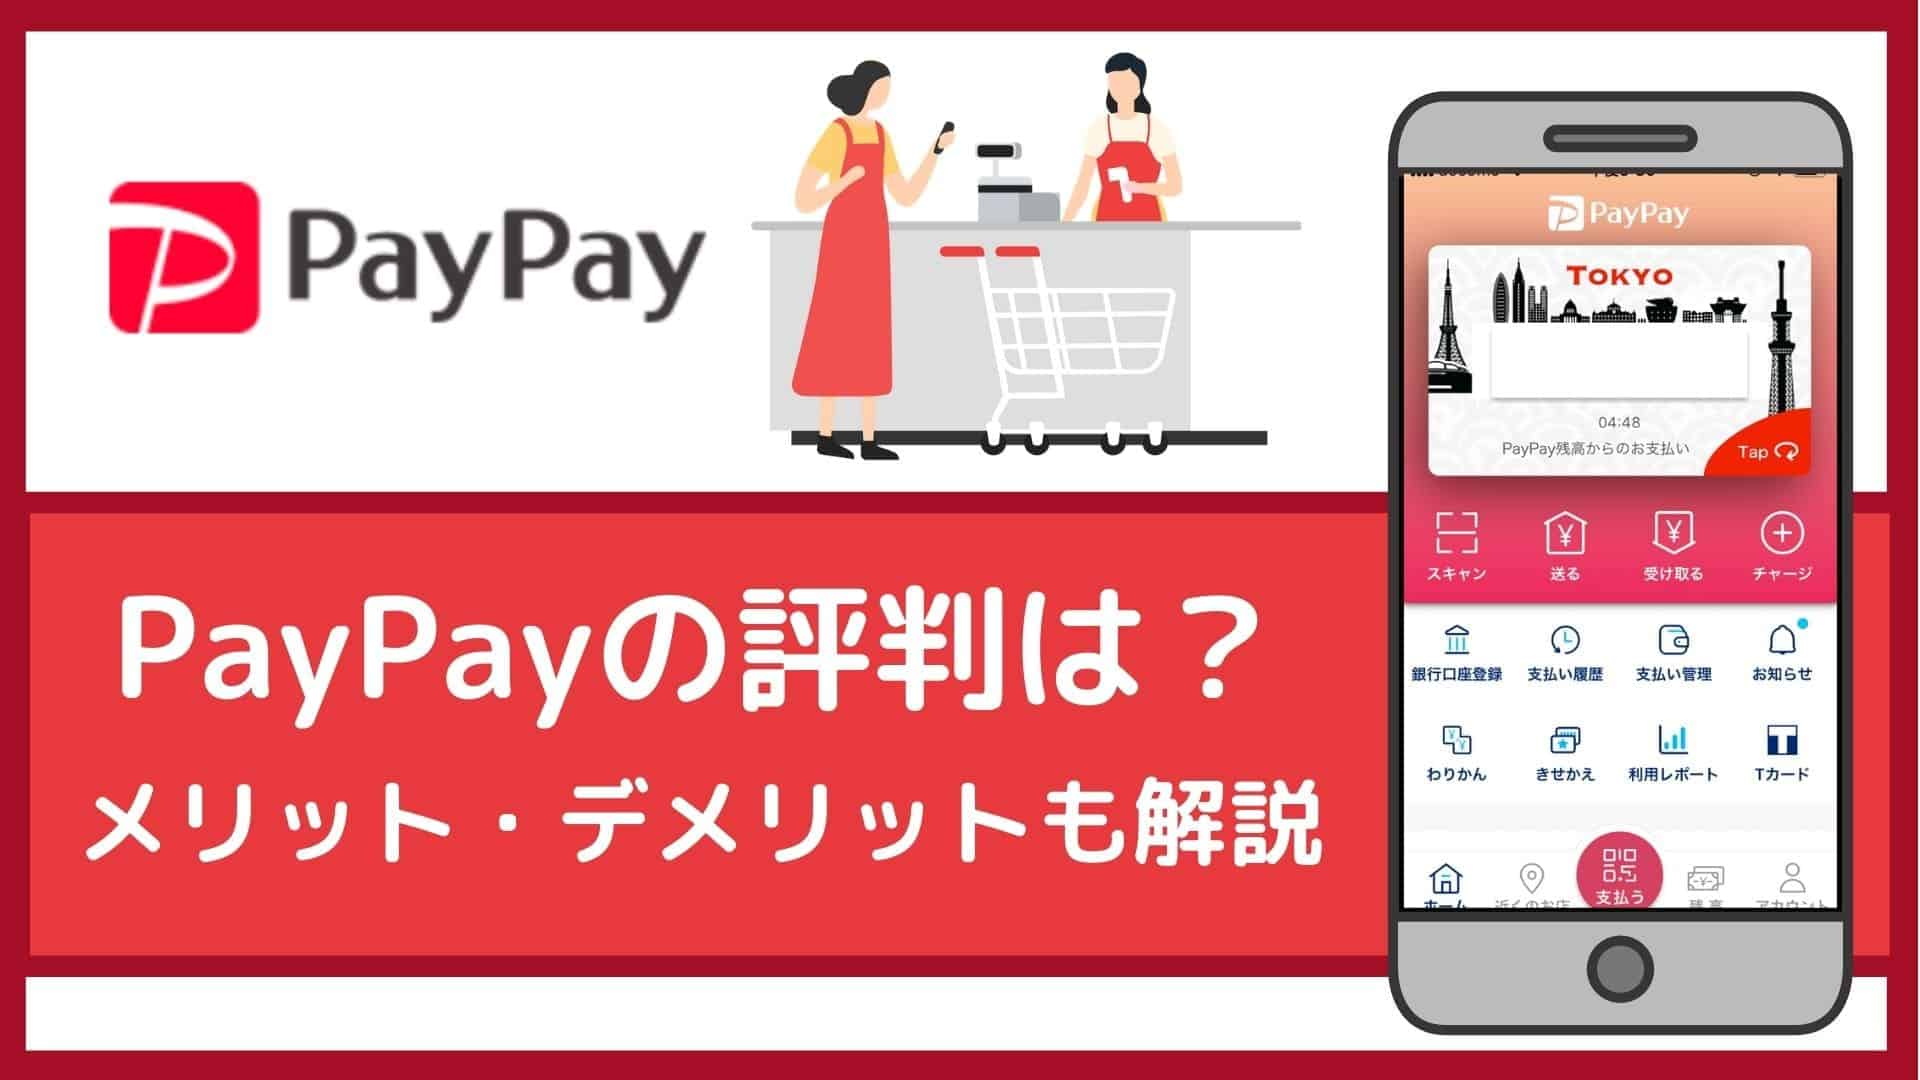 PayPay(ペイペイ)の評判は?メリット・デメリットを比較・解説 | マネーの研究室